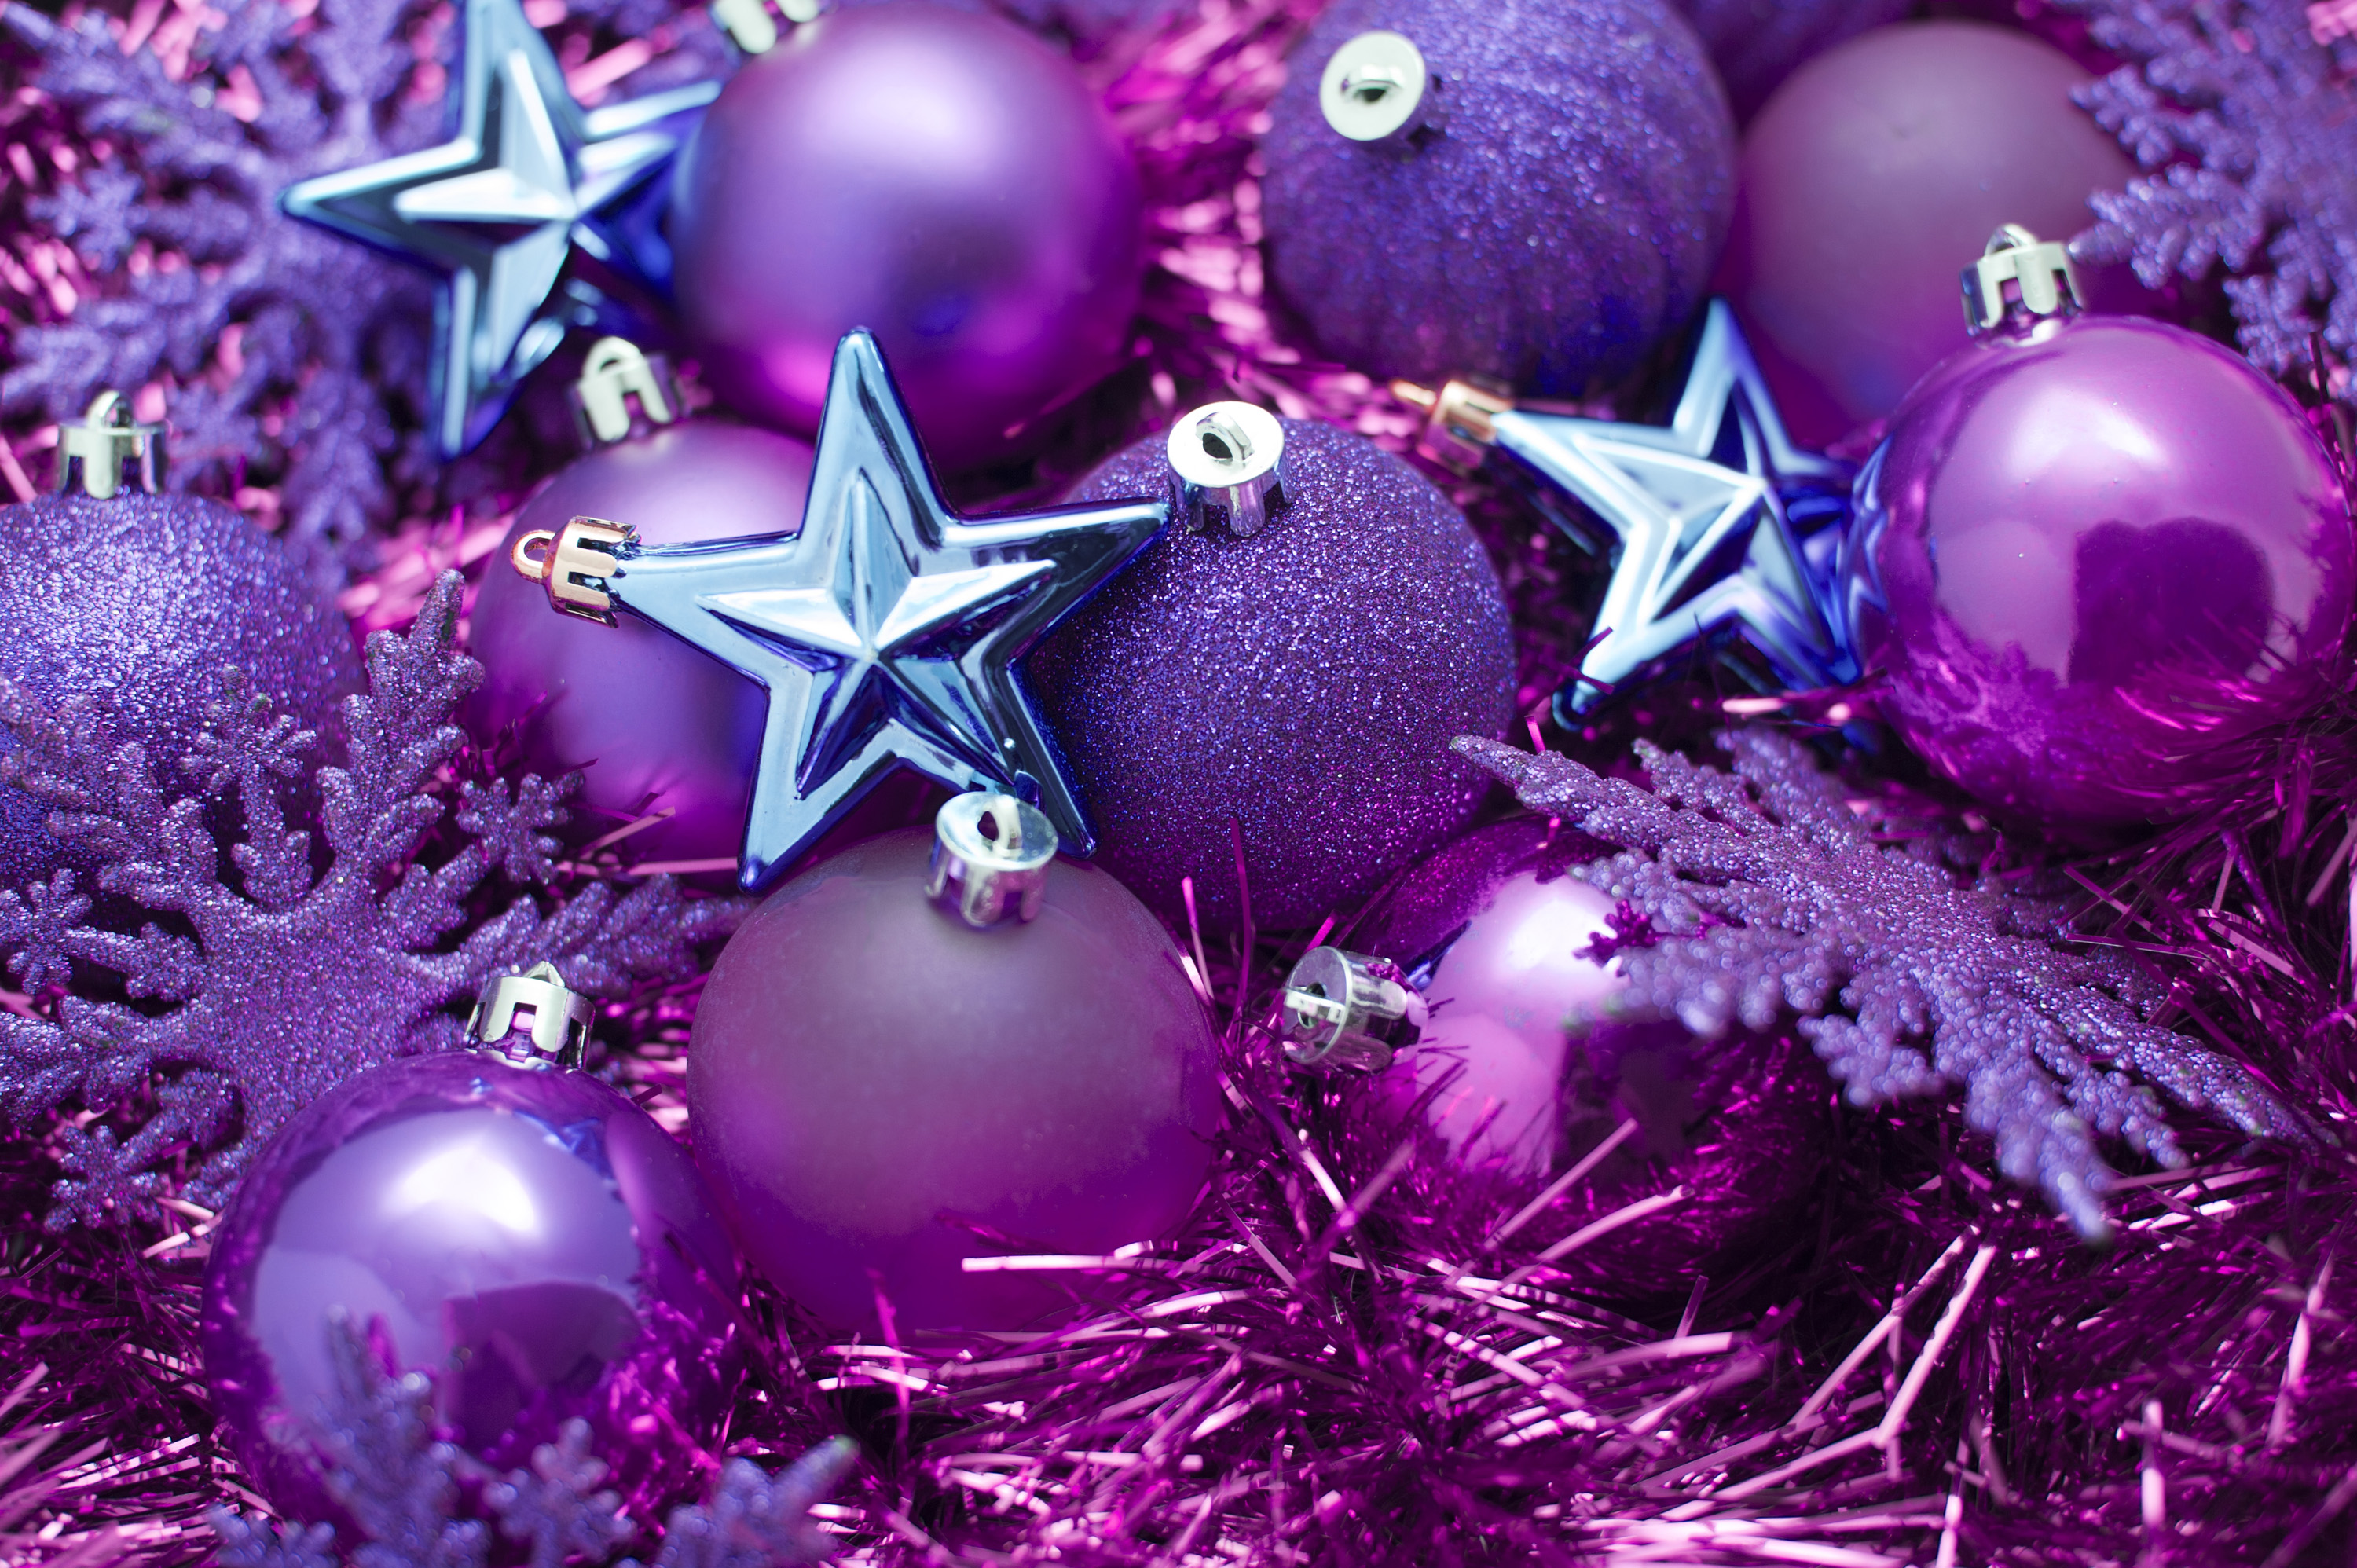 Lavender christmas ornaments - An Assortment Of Different Purple And Pink Christmas Decorations Including Baubles Snowflakes Stars And